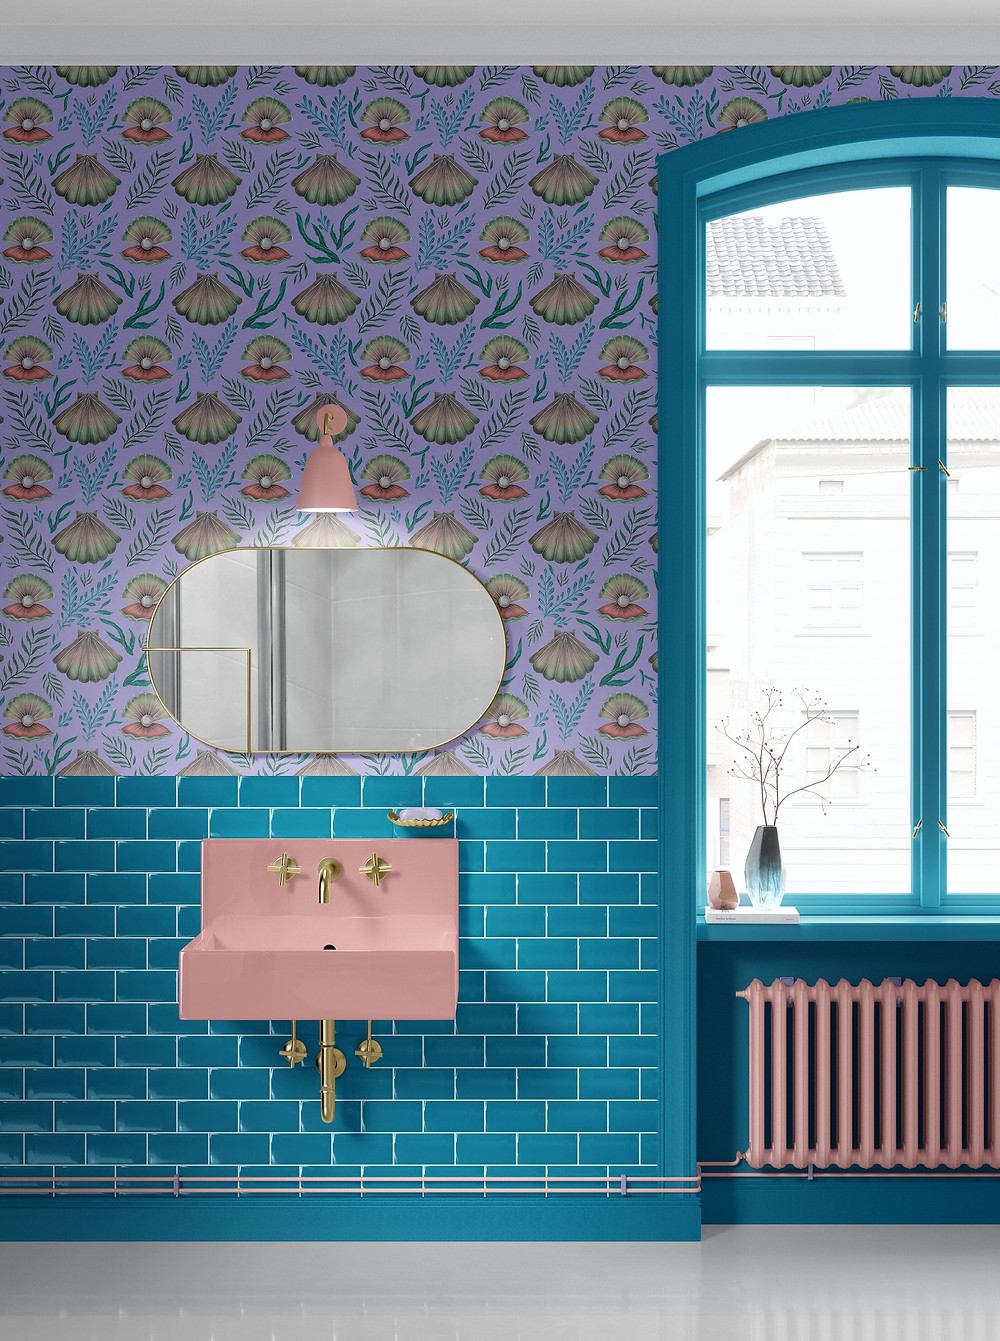 bathroom decorated with blue metro tiles and lavender wallpaper with shell and pearl design by Catherine Rowe. Round brass mirror and a pink wall light above the pink vanity sink